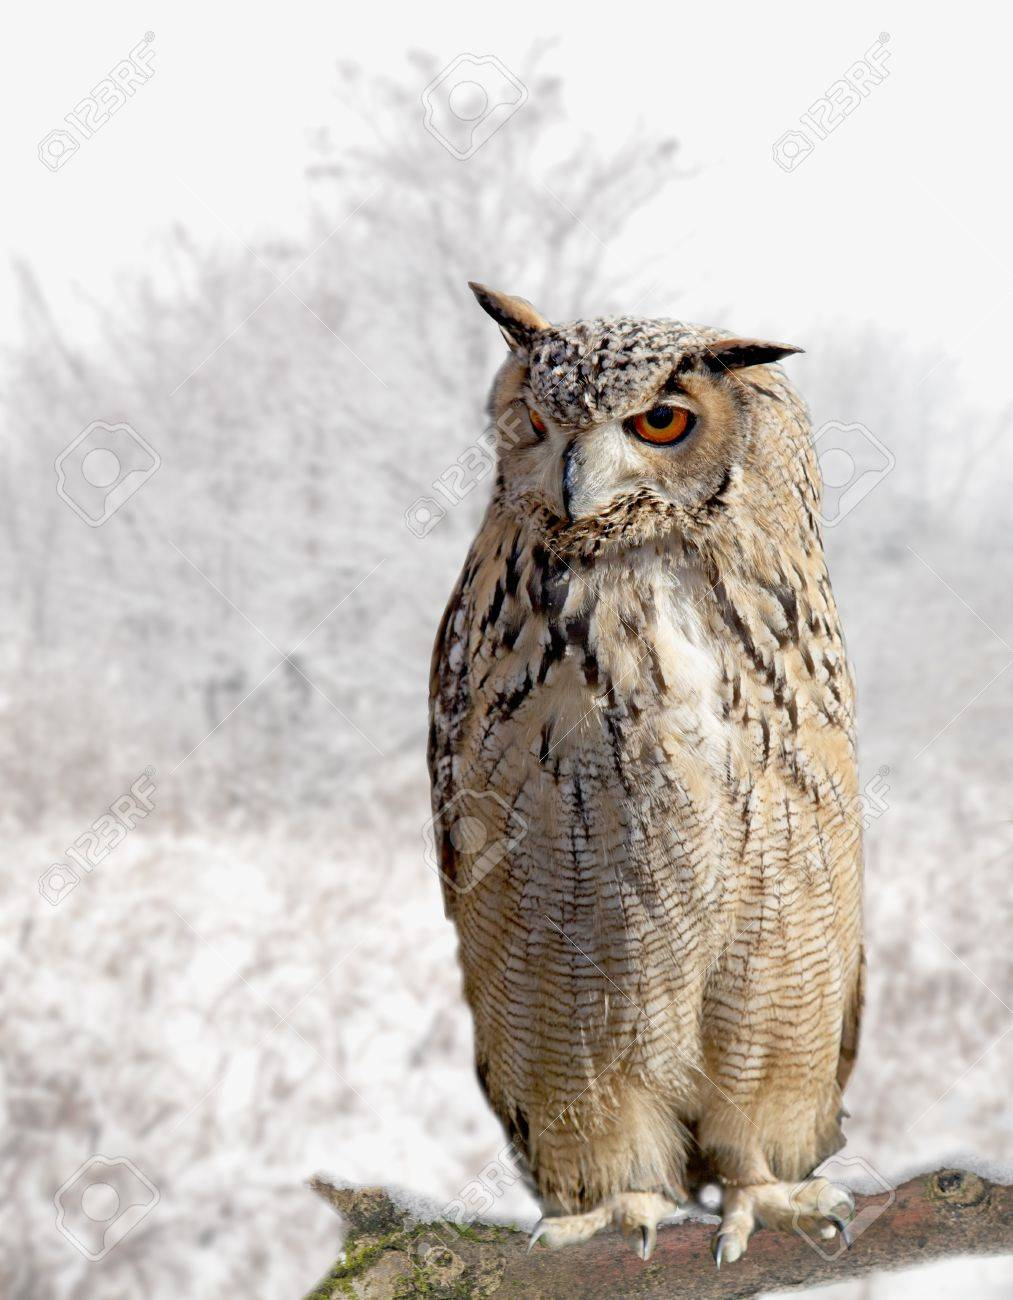 Close up of an owl standing on the branch of a tree Stock Photo - 17090566